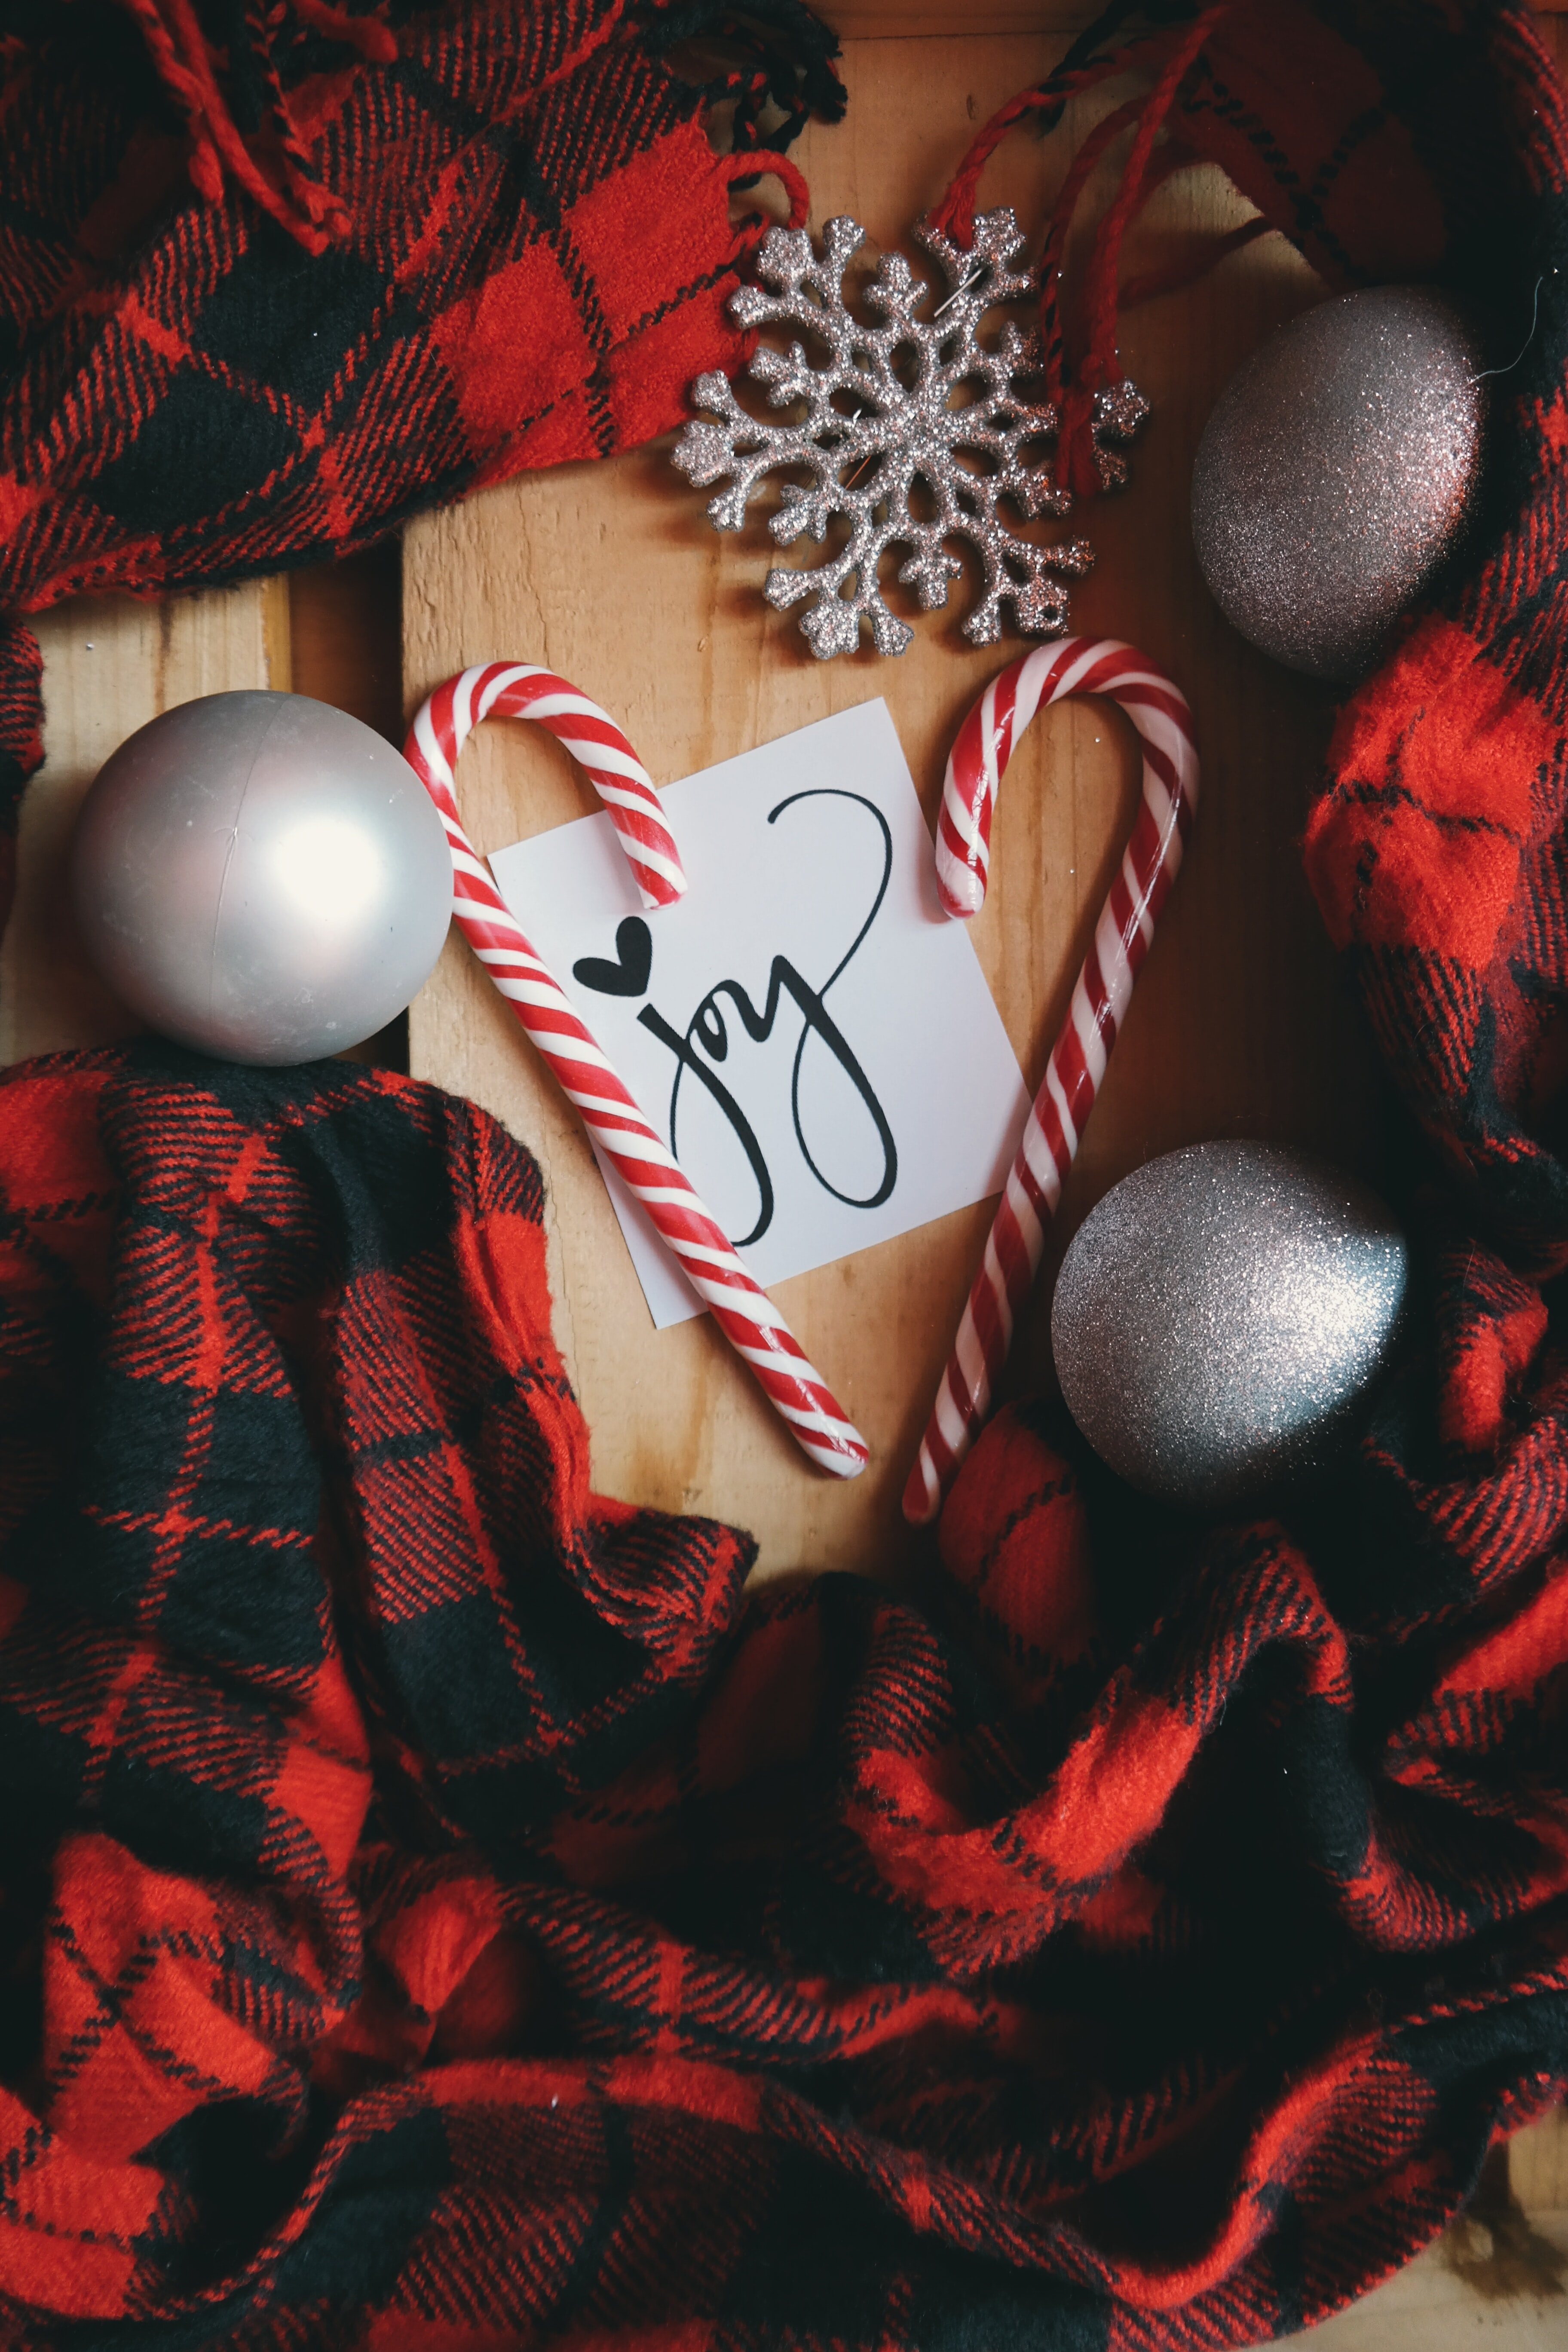 """A white note that says """"Joy,"""" surrounded by candy canes, XMAS ornaments and red plaid material."""